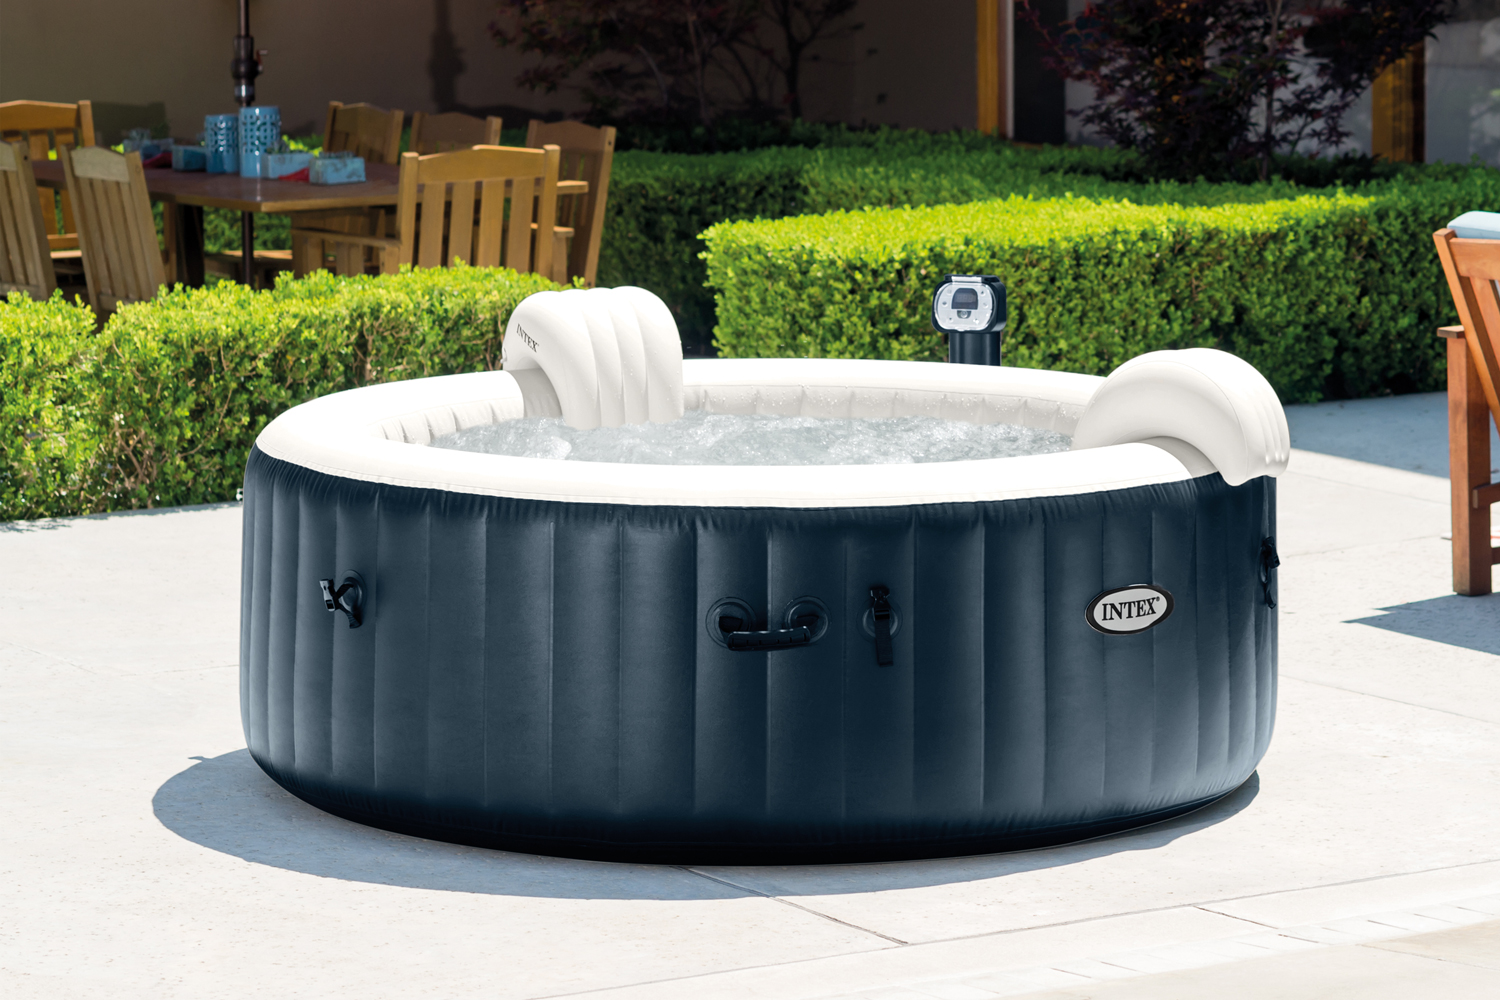 Intex pure spa 6 person inflatable portable heated bubble hot tub model 28409 - Destockage spa jacuzzi ...